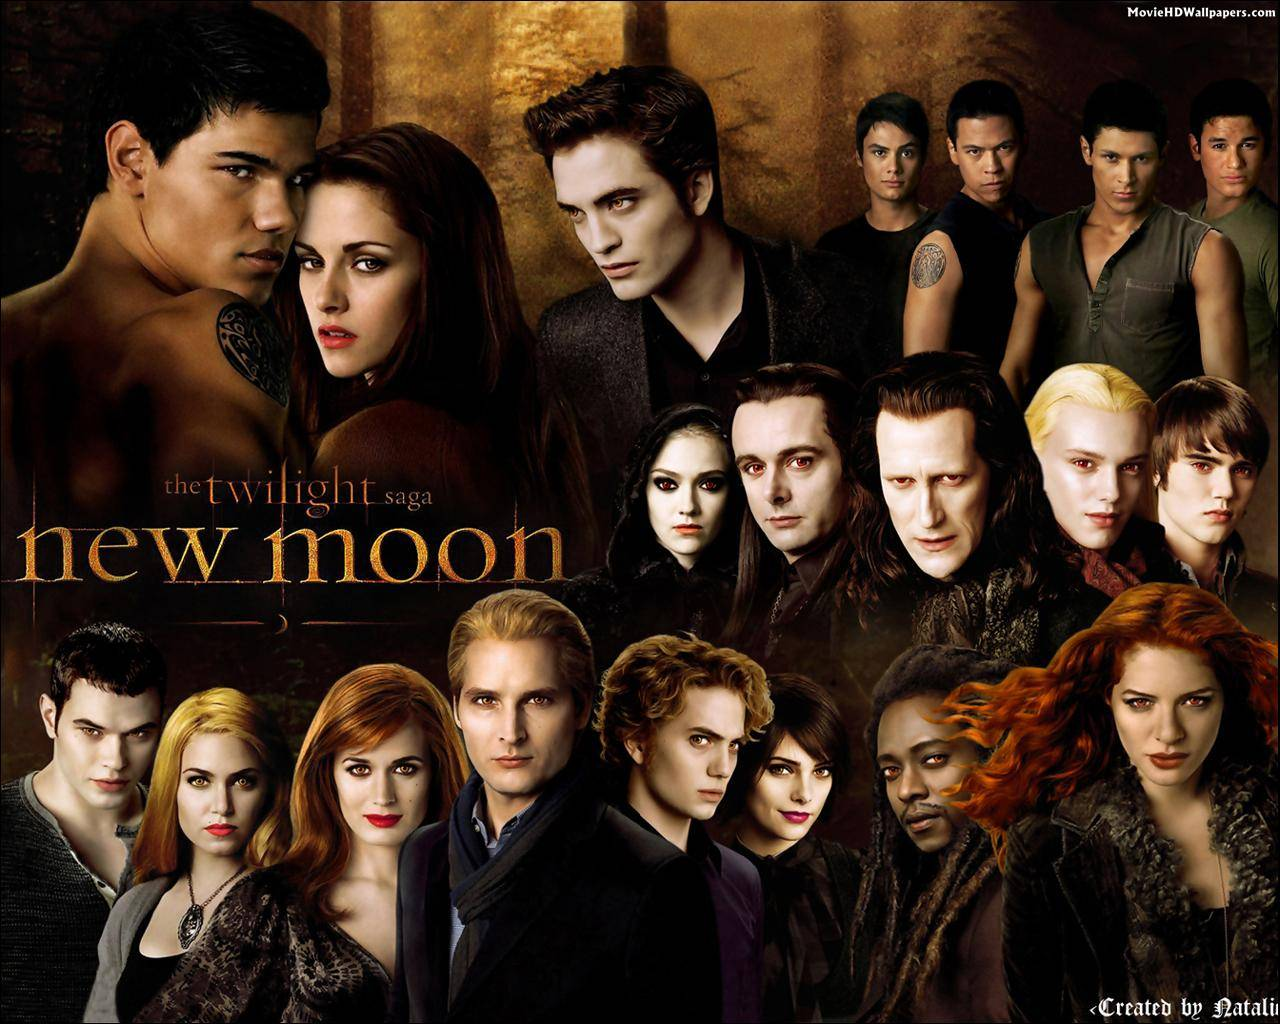 The Twilight Saga New Moon Wallpapers and Background Images 1280x1024